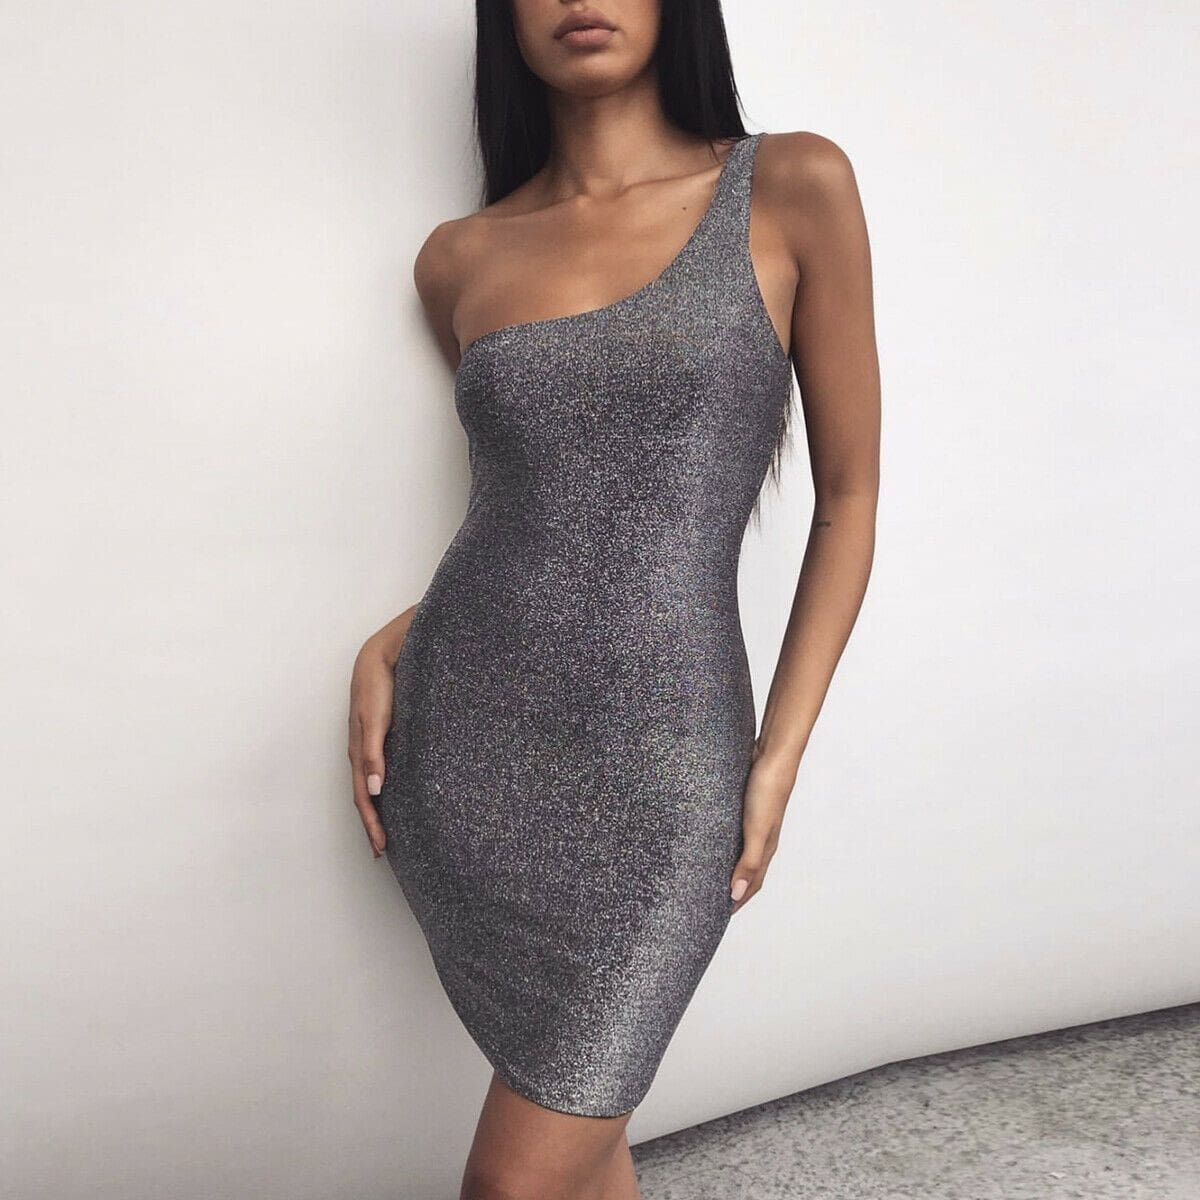 Bodycon Dress Women Sexy Shinny One Shoulder Sleeveless Short Mini Dresses Package Hip Slim Fit Ladies Casual Dress - Silver / S - Dresses